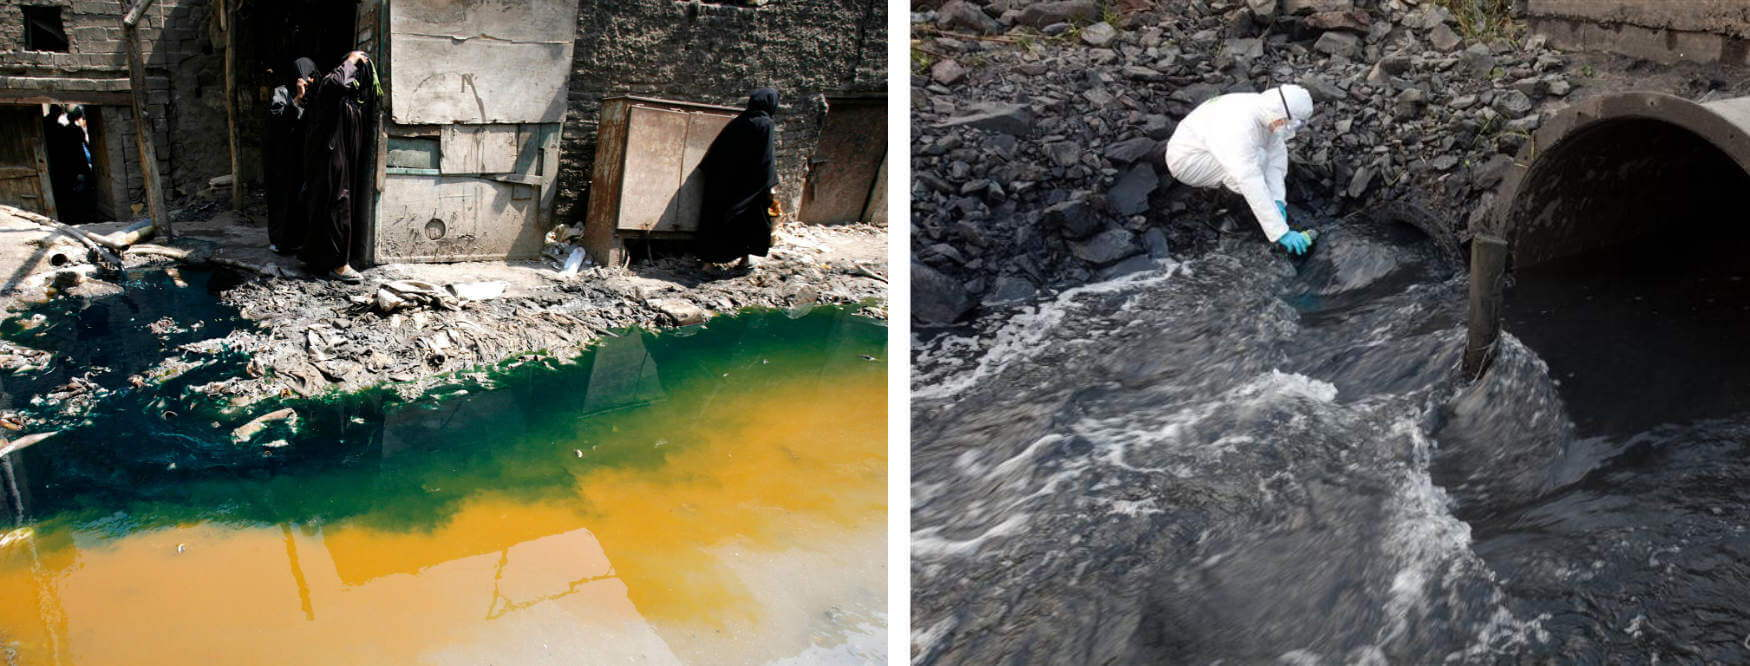 Contaminated wastewater being dumped into the environment, frequently containing hazardous chemicals.